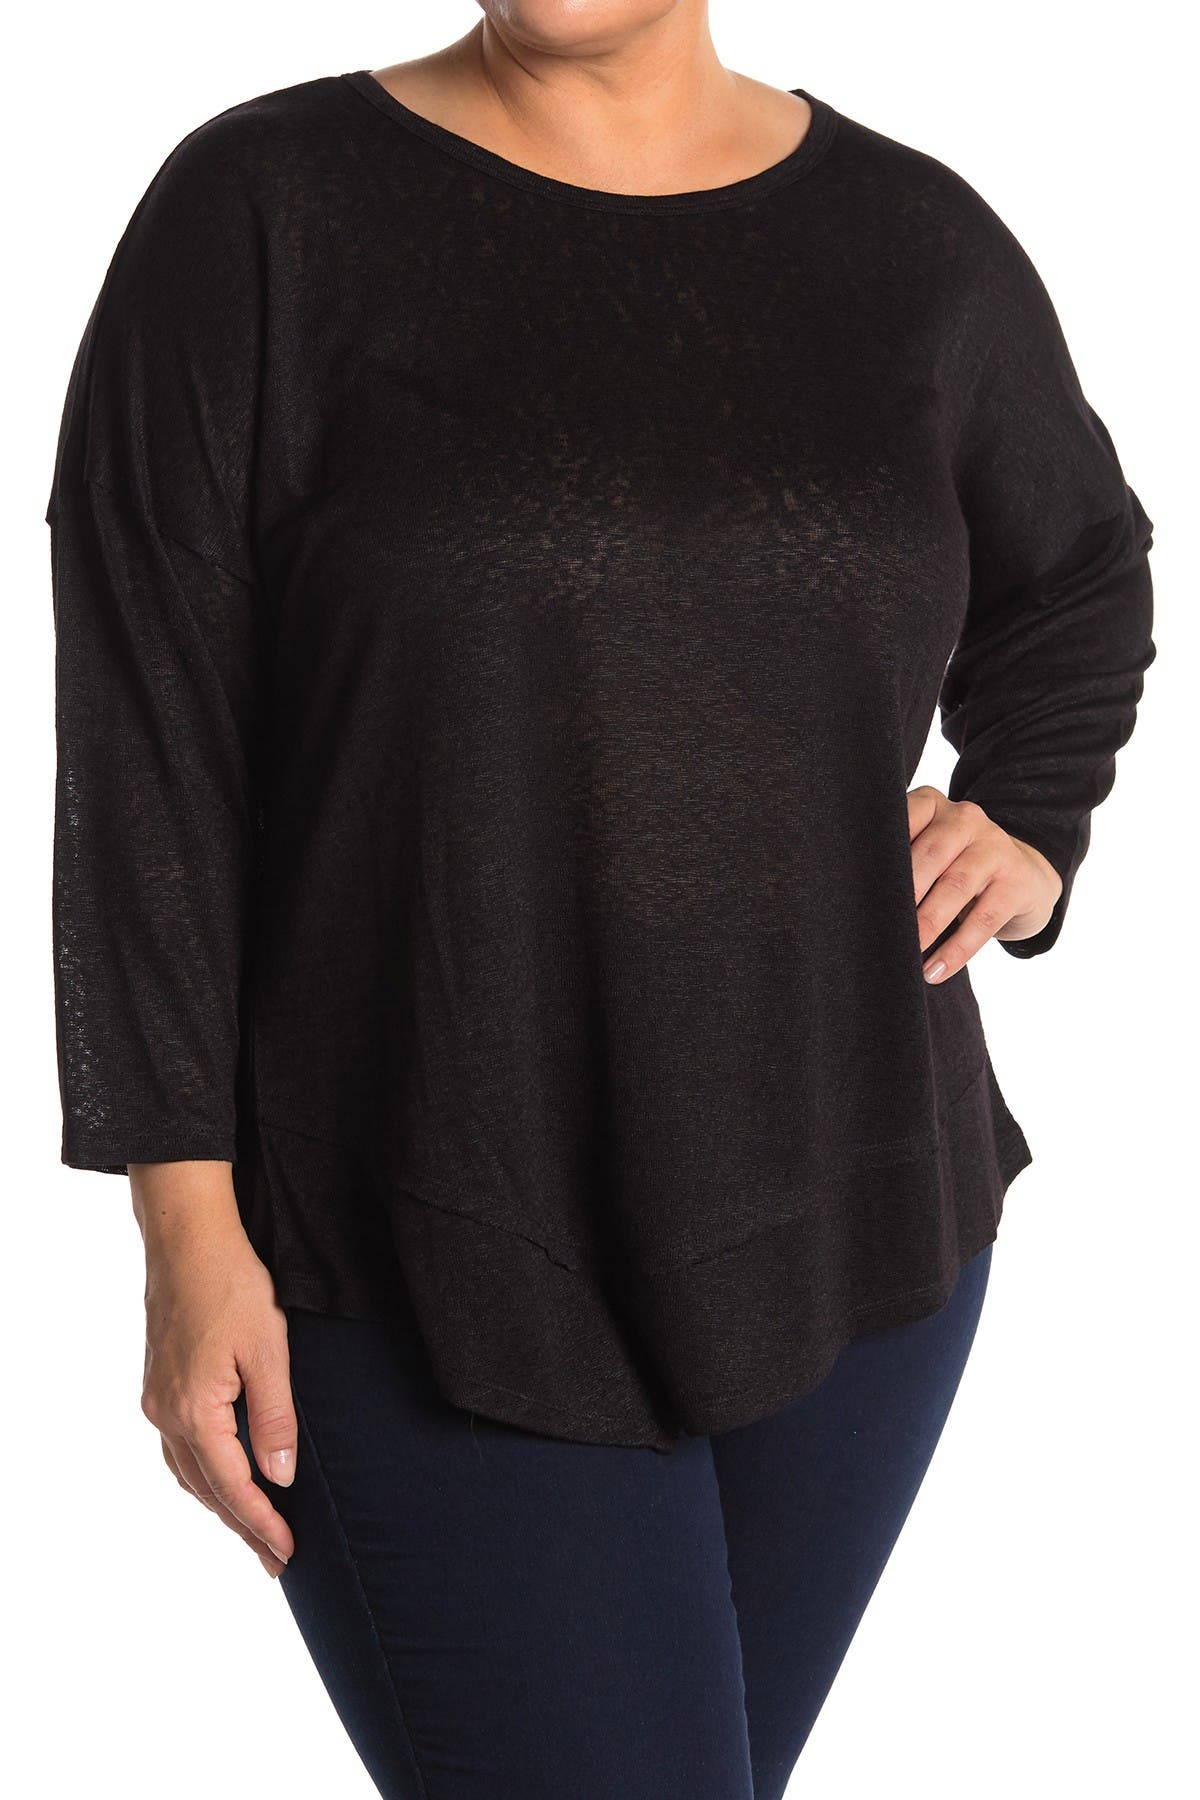 Image of Bobeau Asymmetrical Solid 3/4 Sleeve Top